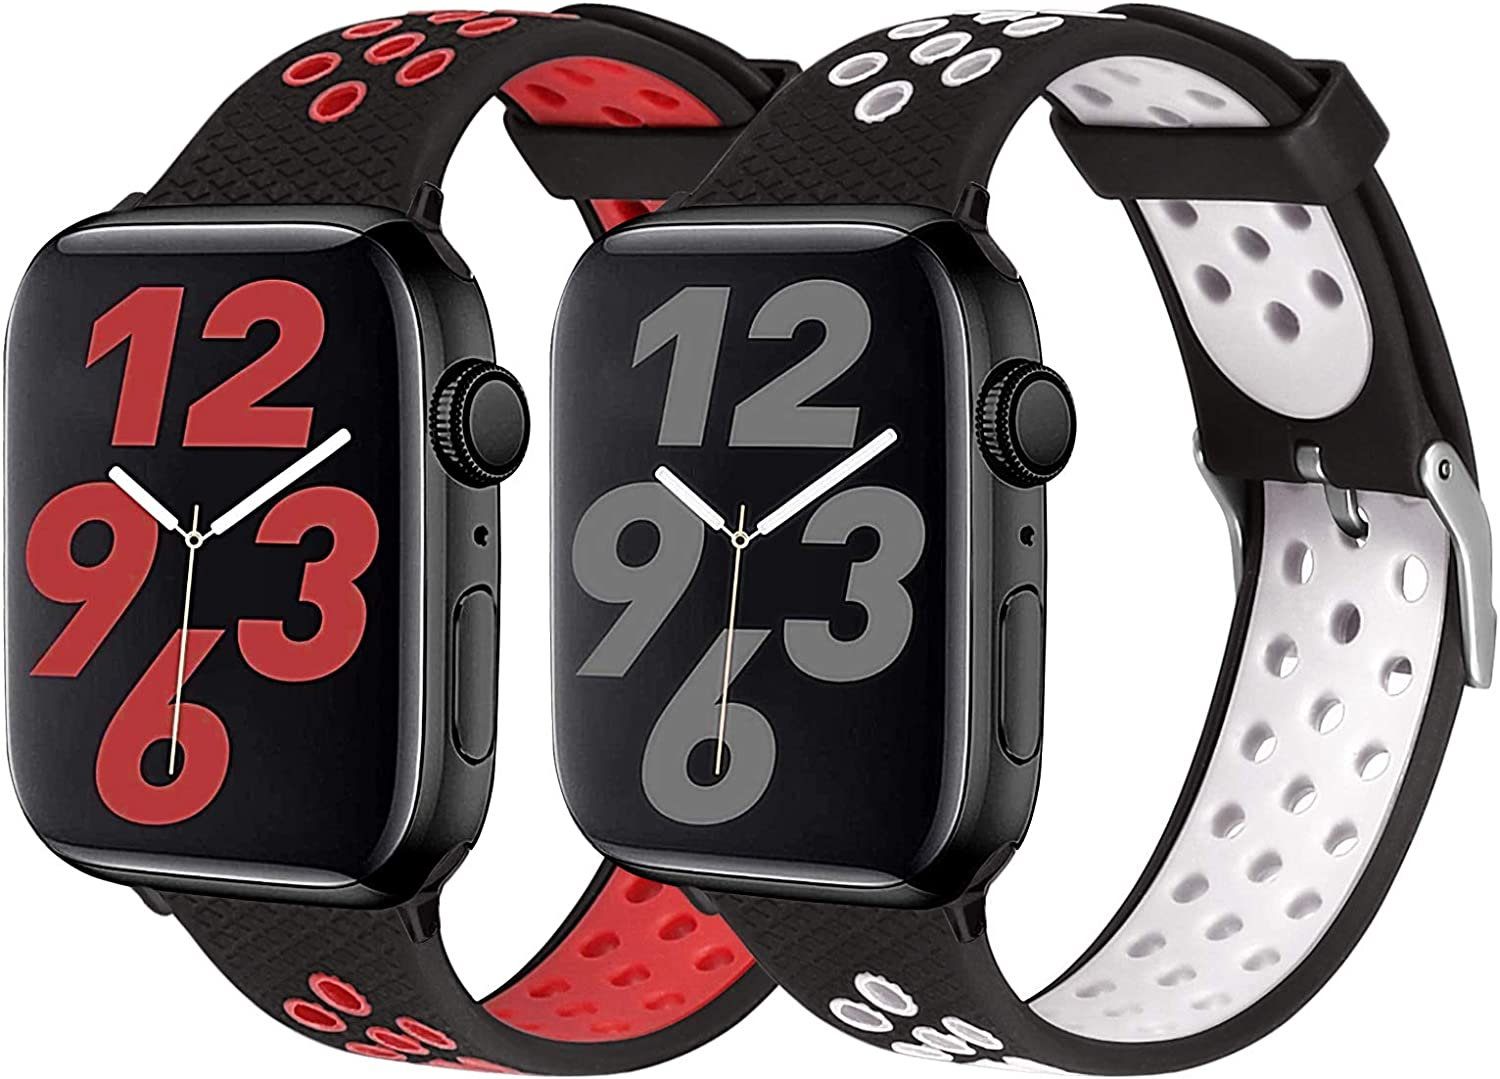 SKYLET Compatible with Apple Watch Bands 44mm 40mm Series 6/5/4/SE 42mm 38mm Series 3/2/1 Women Men, 2 Pack Soft Sport Silicone Breathable Wristbands Replacement iWatch Straps(Black-White/Black-Red)